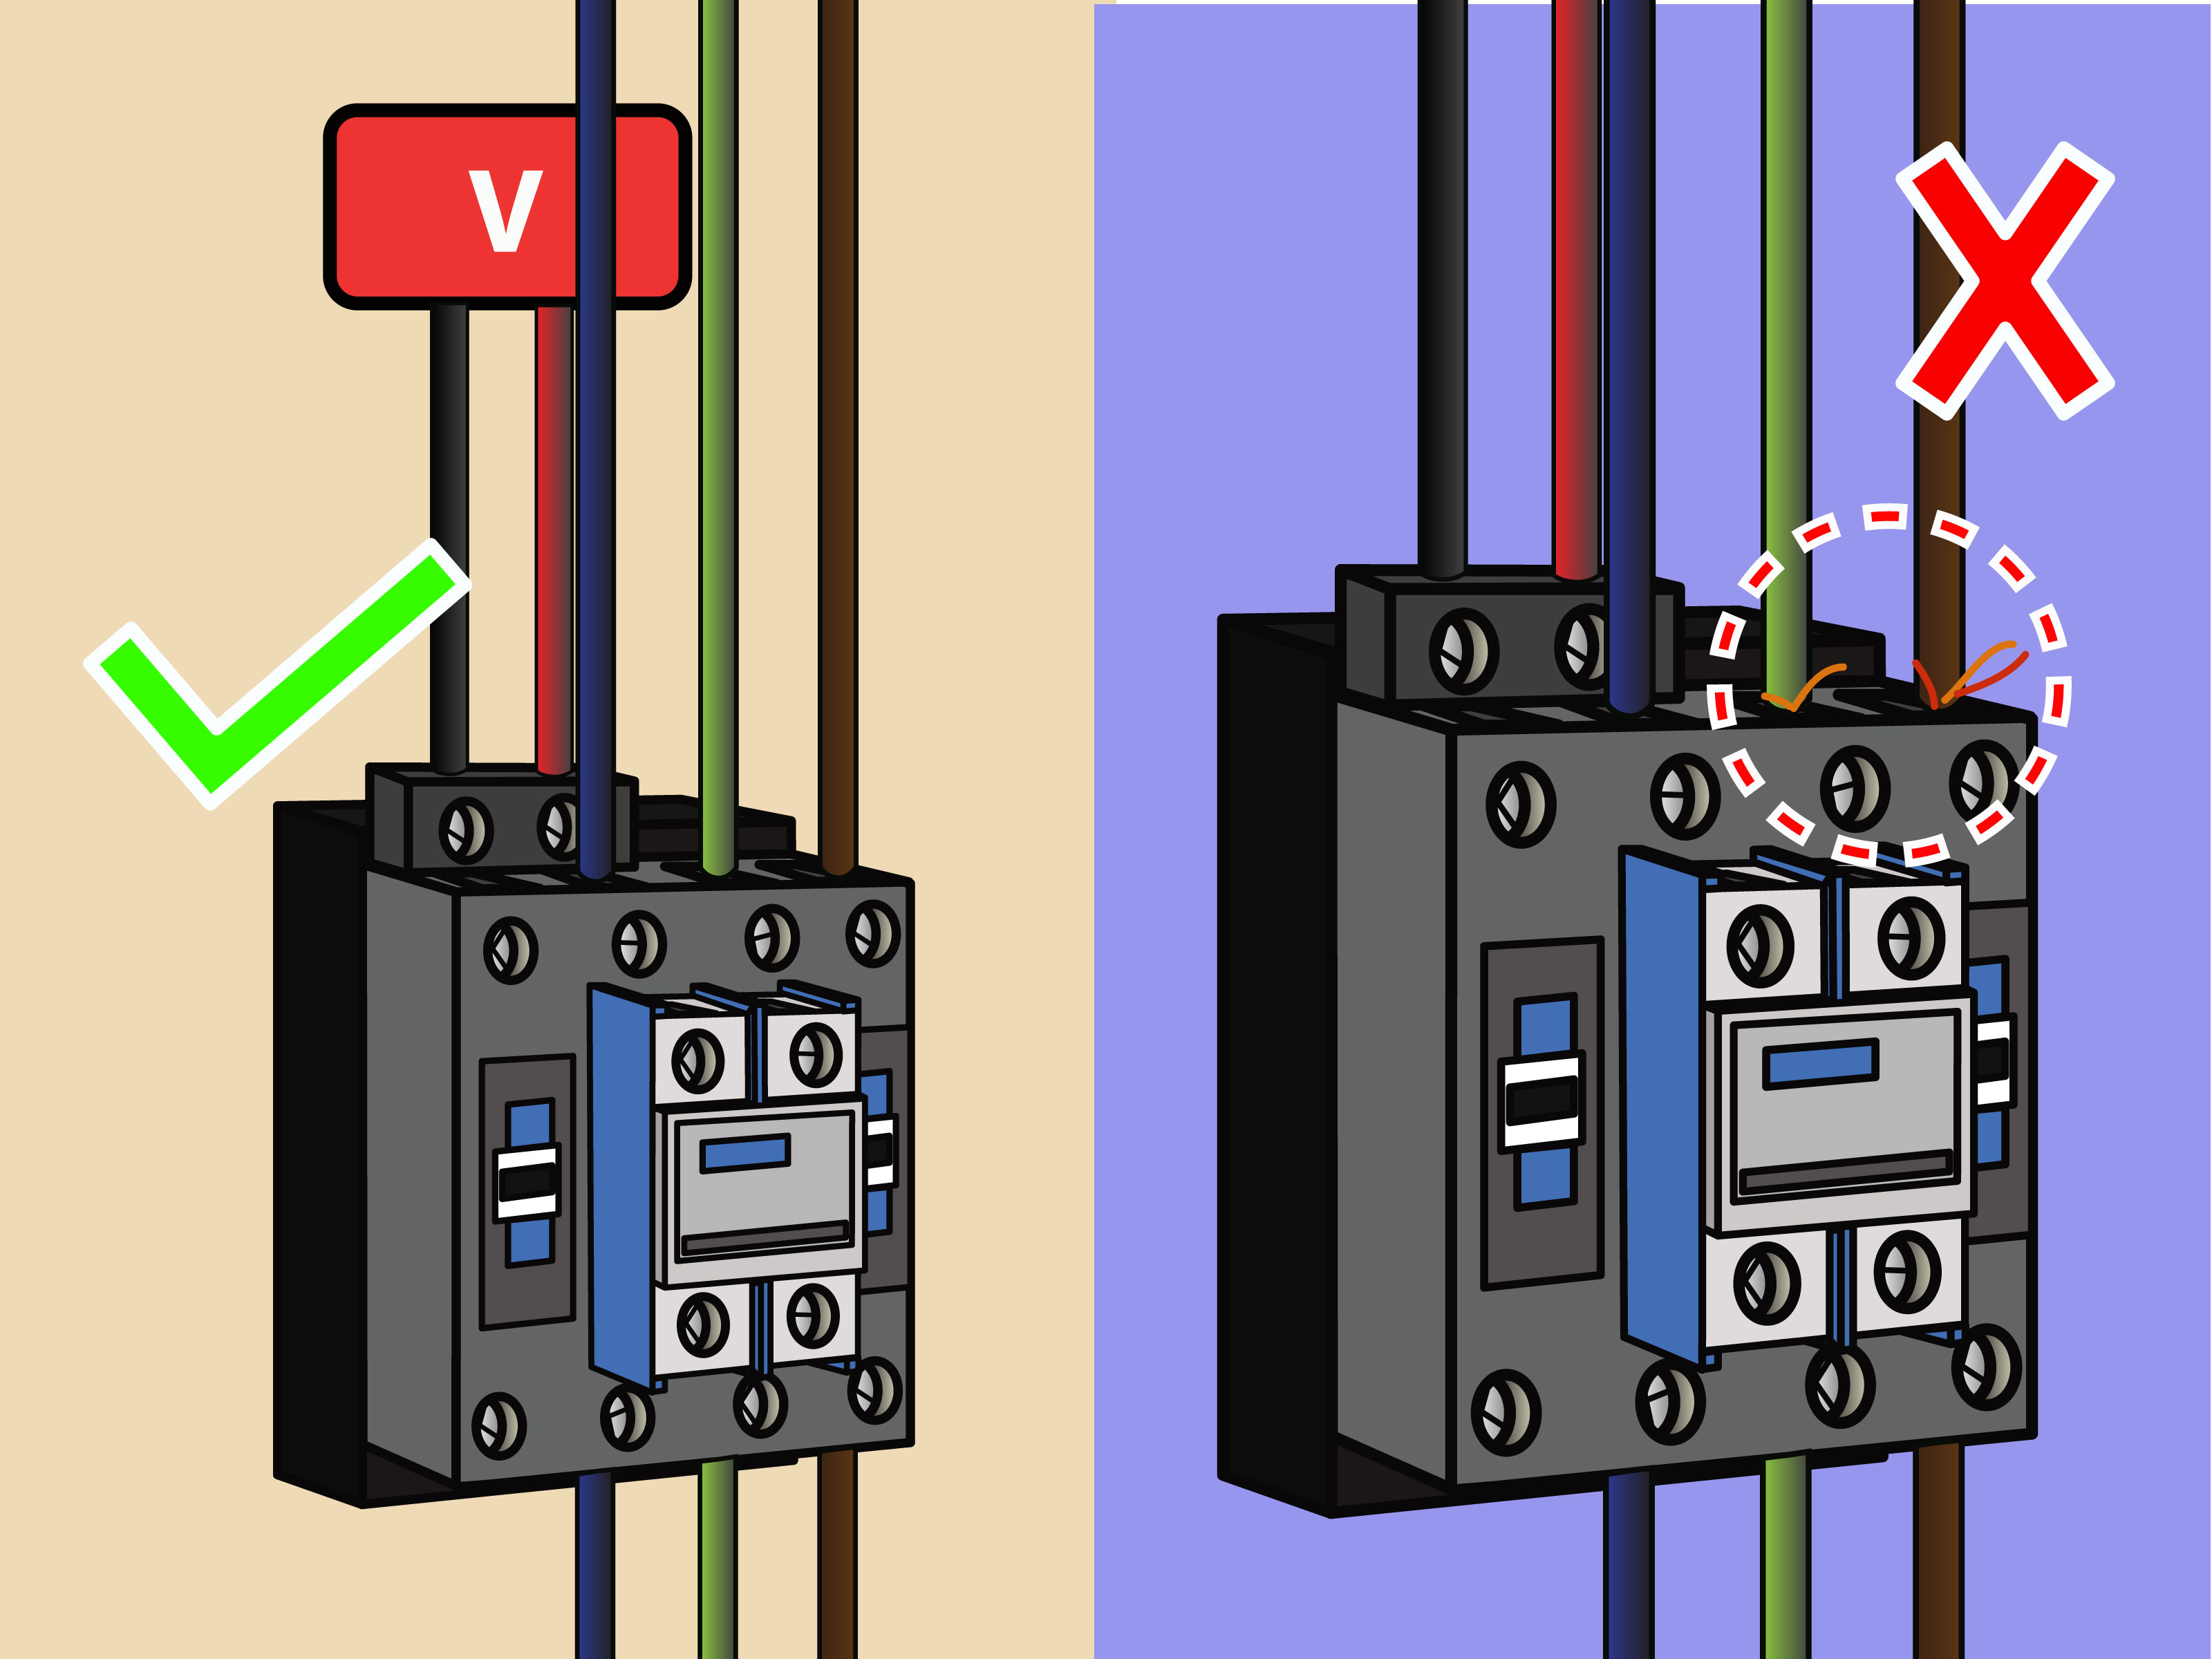 How To Wire A Contactor: 8 Steps (With Pictures) - Wikihow - 240 Volt Contactor Wiring Diagram